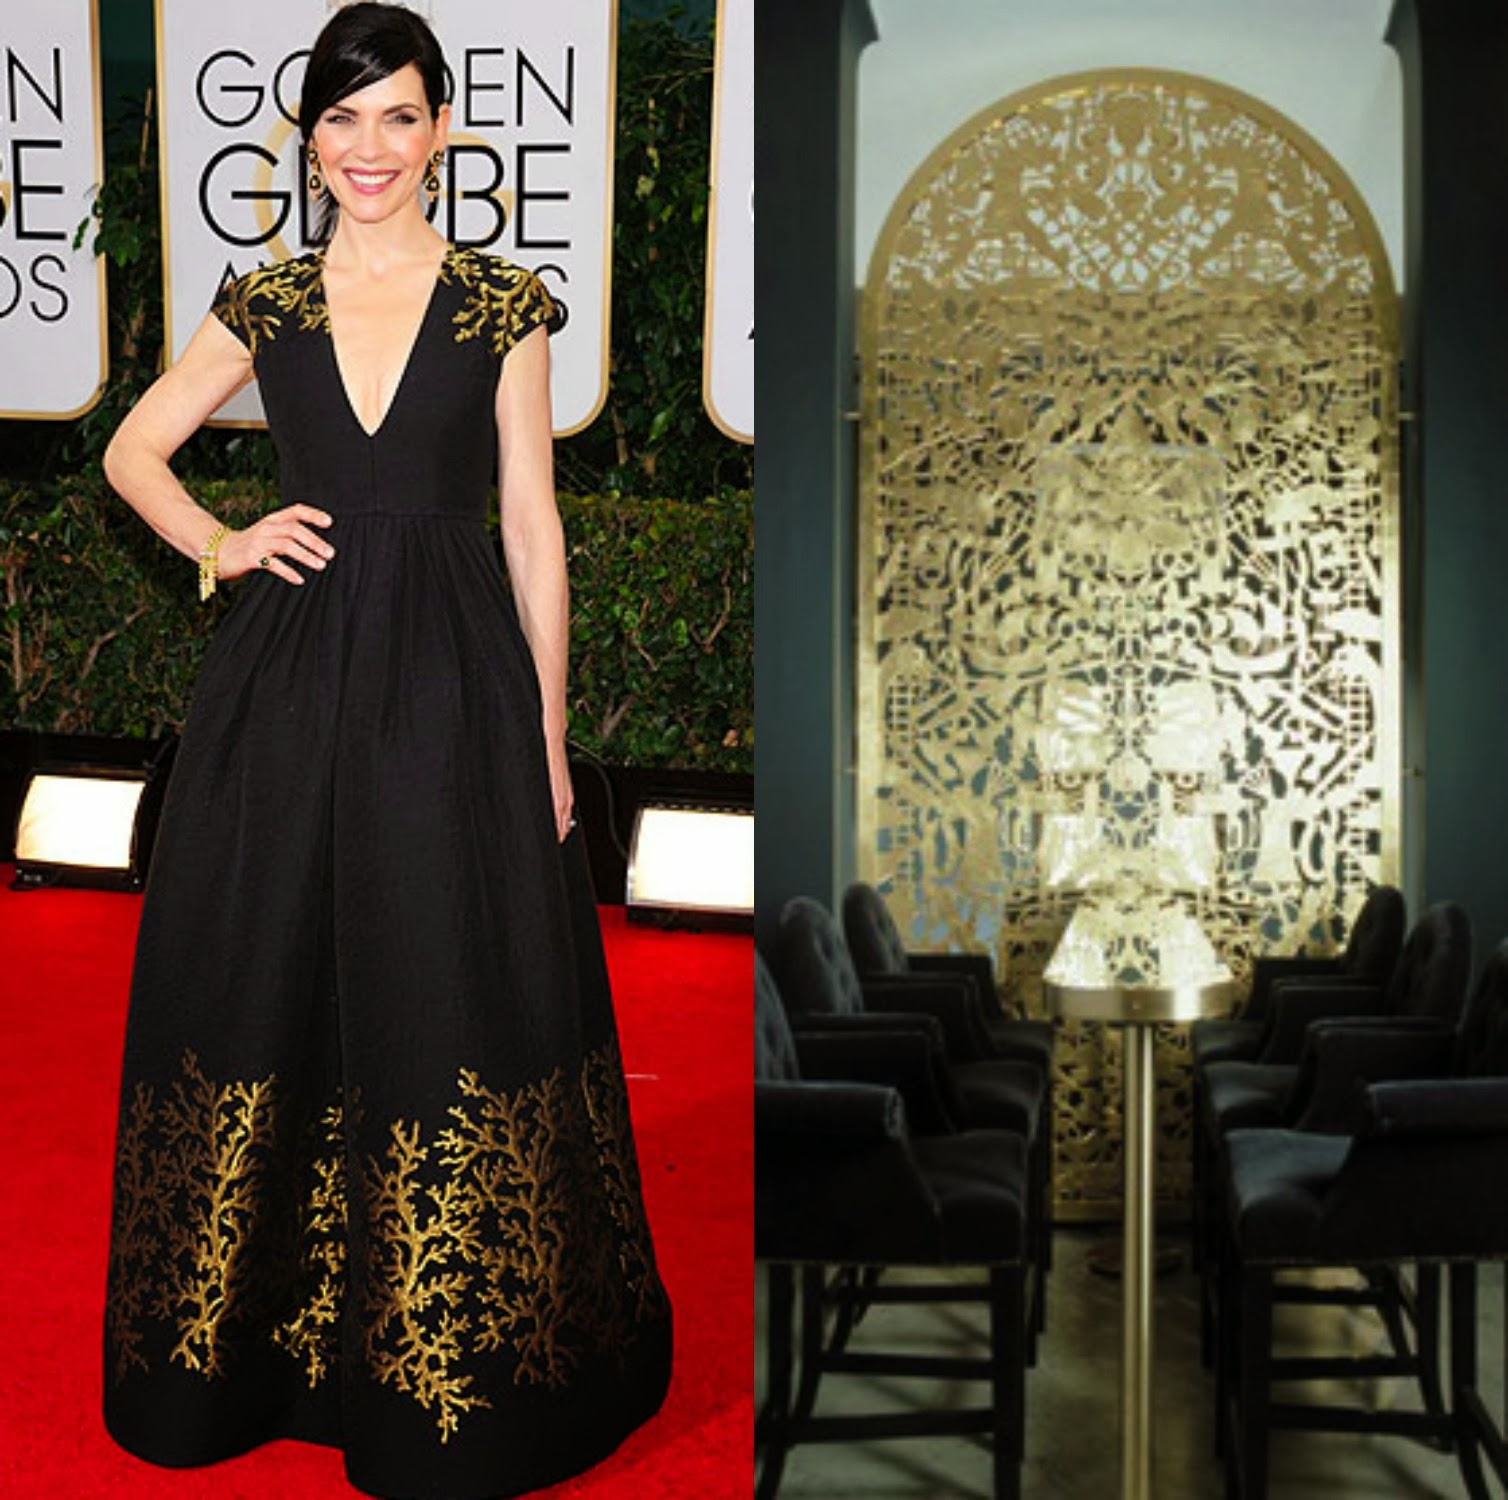 La vie Jaime : Inspired by the Golden Globes 2014: My Best ...